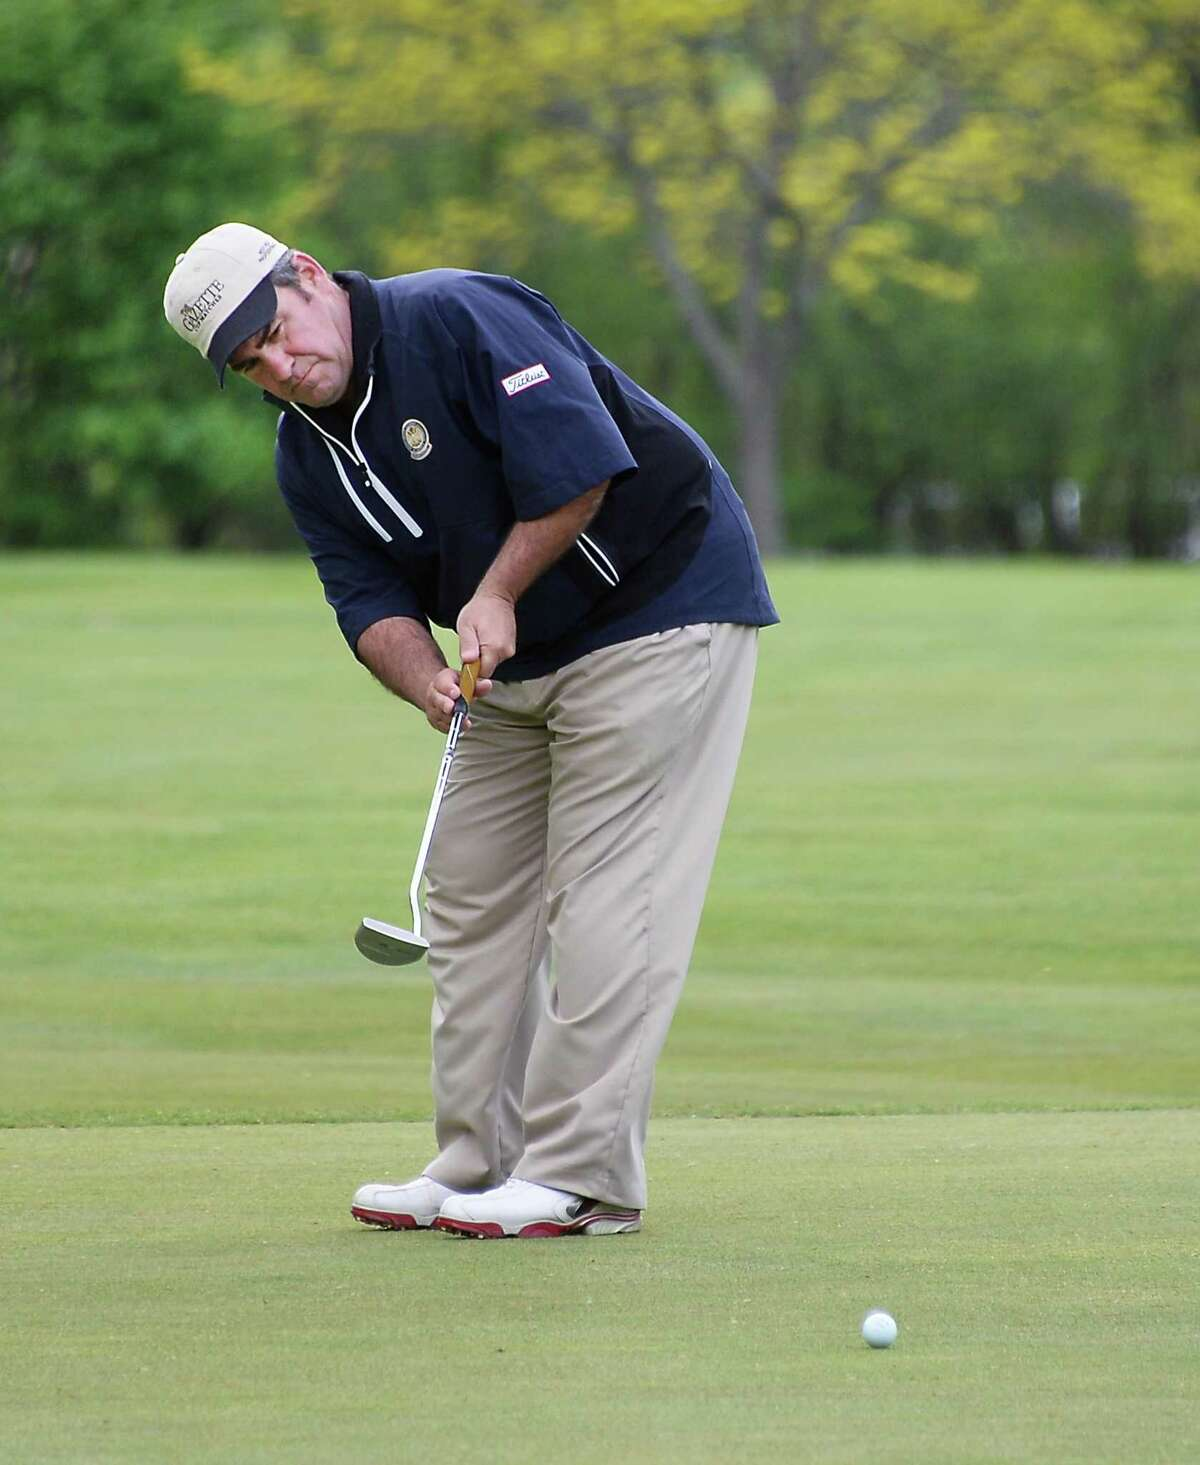 Noel Gebauer putts during the annual Challenge Cup pros vs. amateurs team competition between the Northeastern New York PGA and the Capital Region Amateur Golf Association at the Edison Club Wednesday May 13, 2015 in Rexford, NY. (John Carl D'Annibale / Times Union)